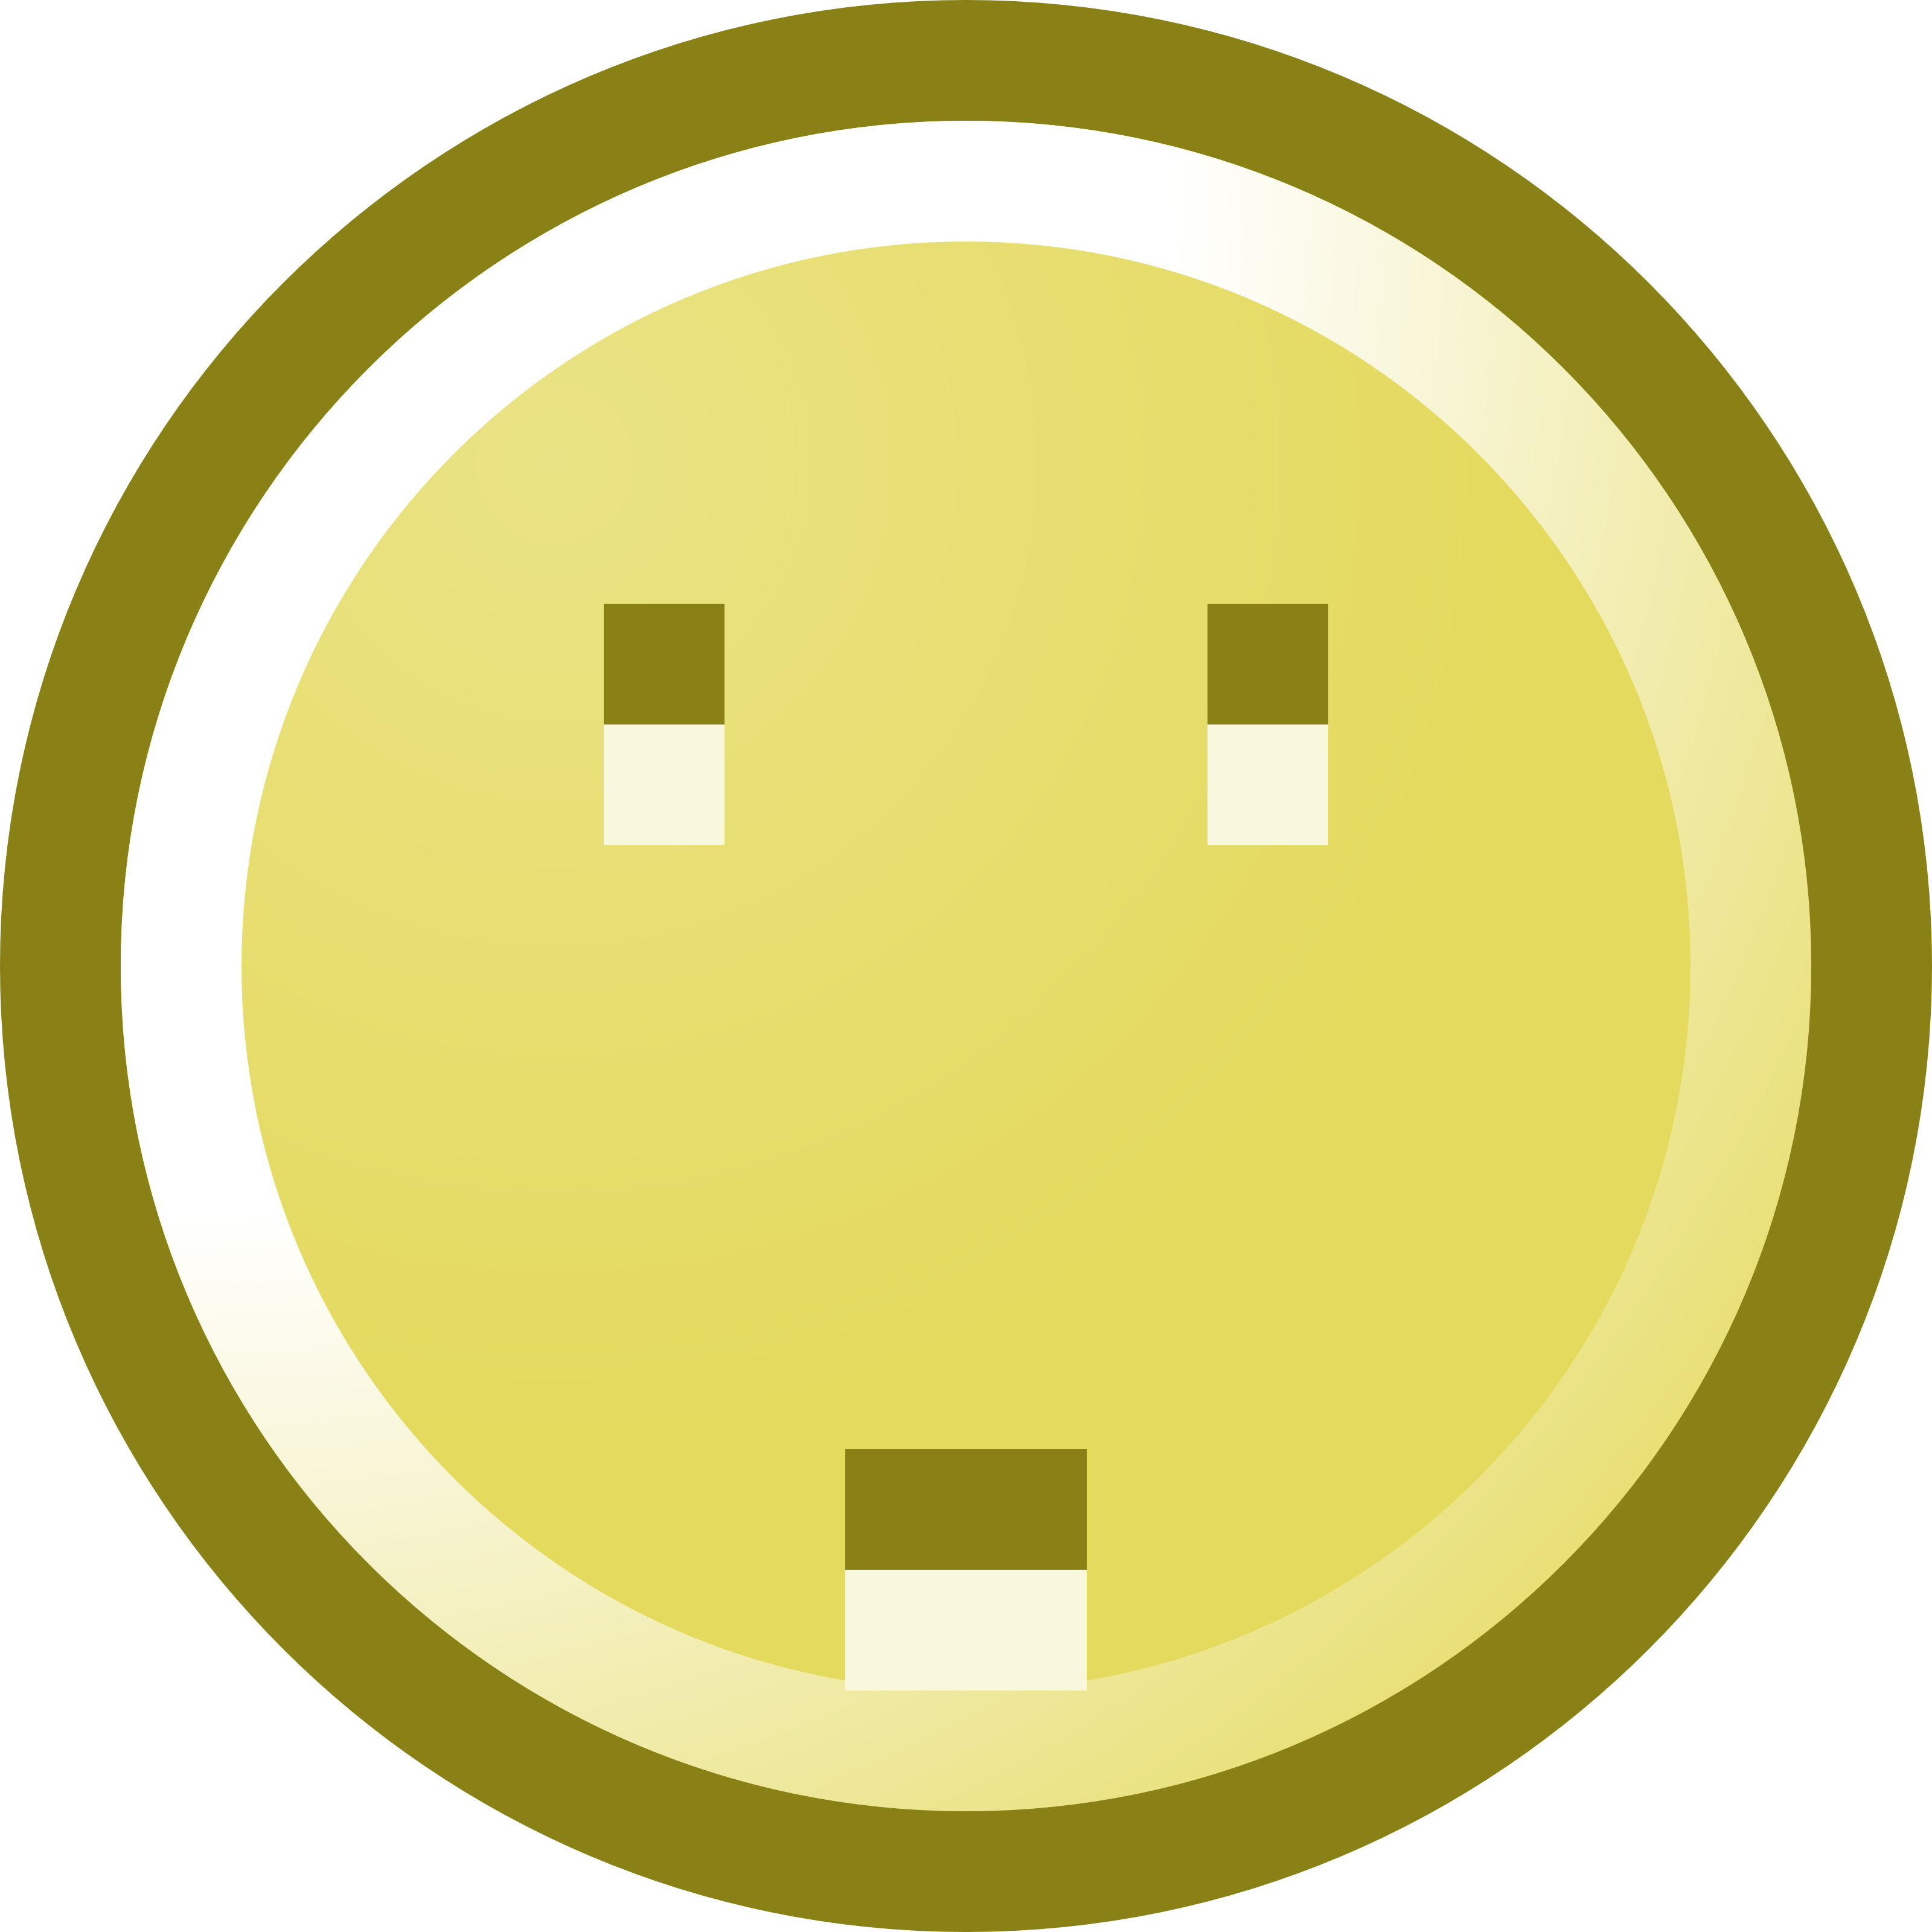 3200x3200 Worried Smiley Face Clip Art Illustration